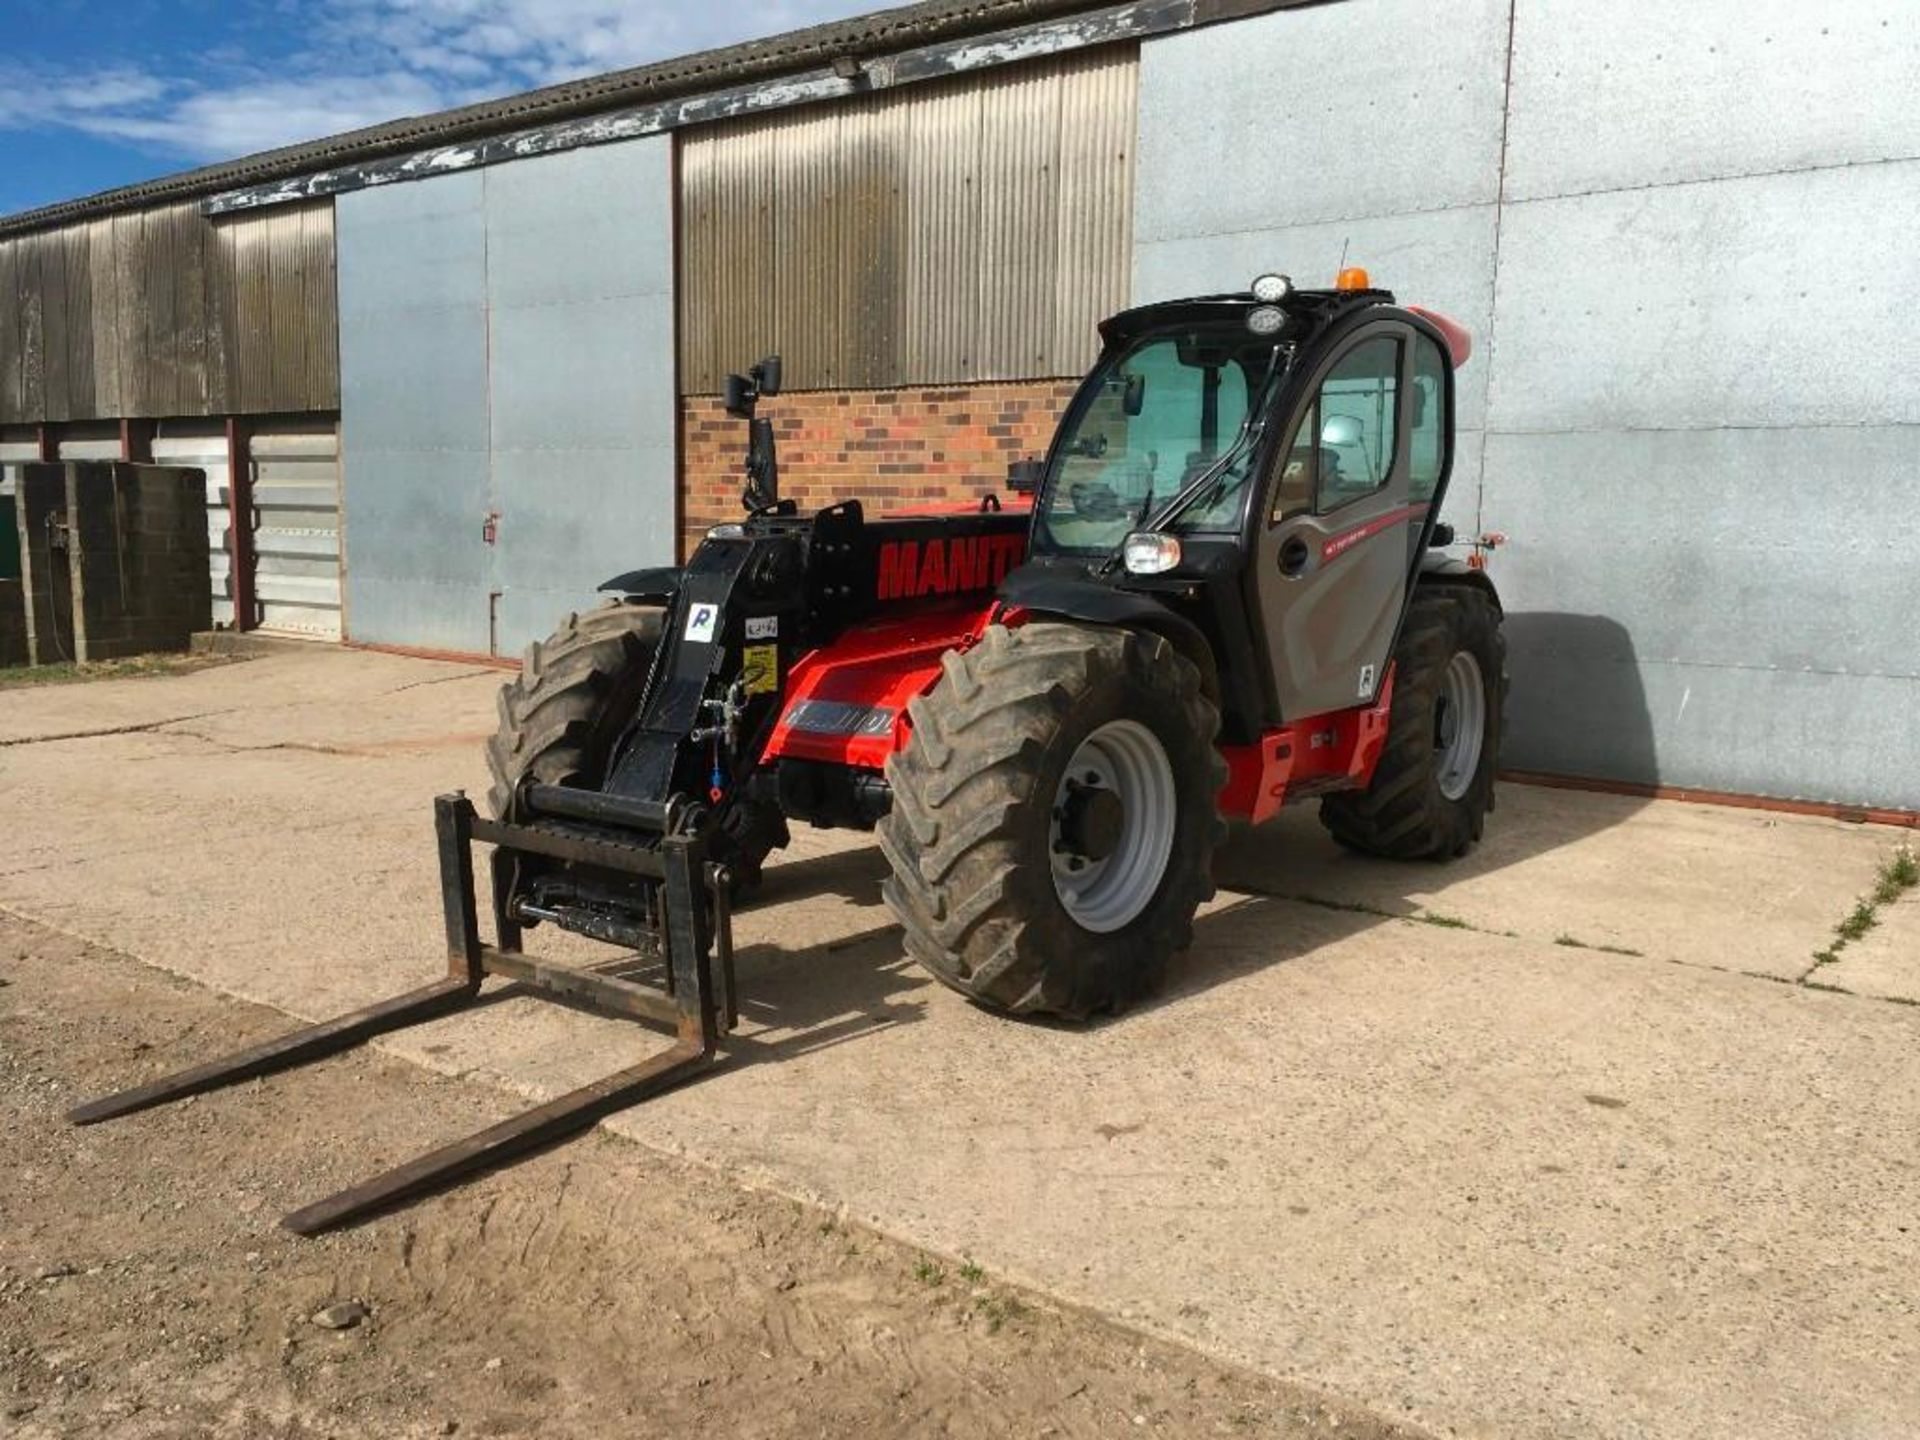 2017 Manitou MLT 737-130 PS+ Elite telehandler with rear pick up hitch, power shift, air seat, elect - Image 4 of 22